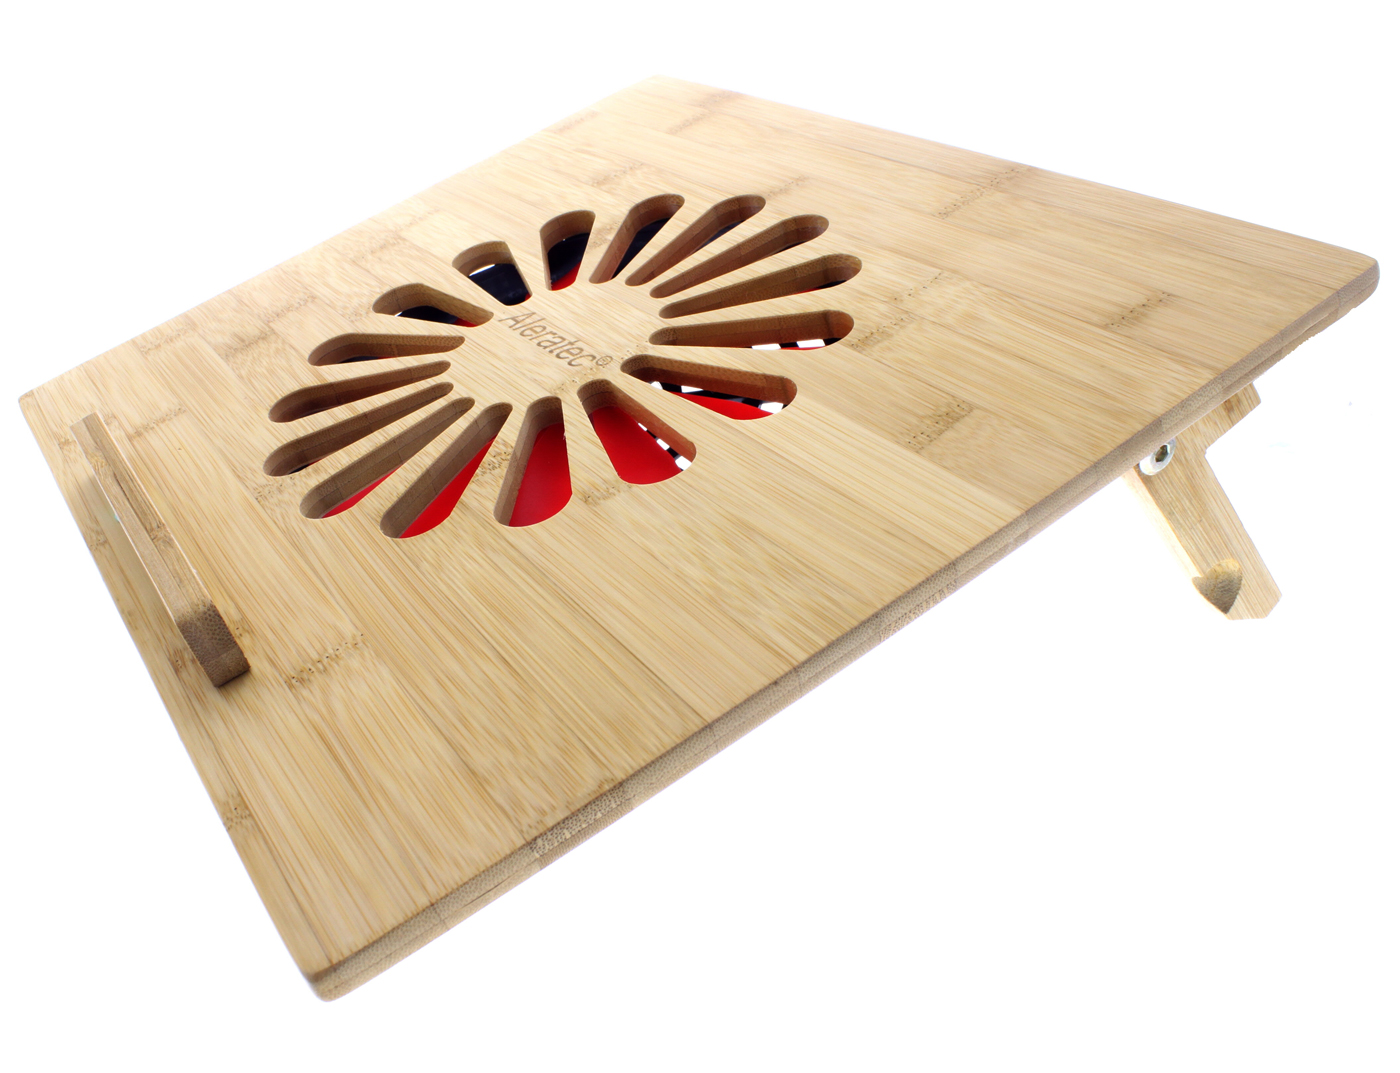 Laptop Table With Fan - Laptop table with fan eco friendly bamboo cooling vented laptop desk table stand with fan